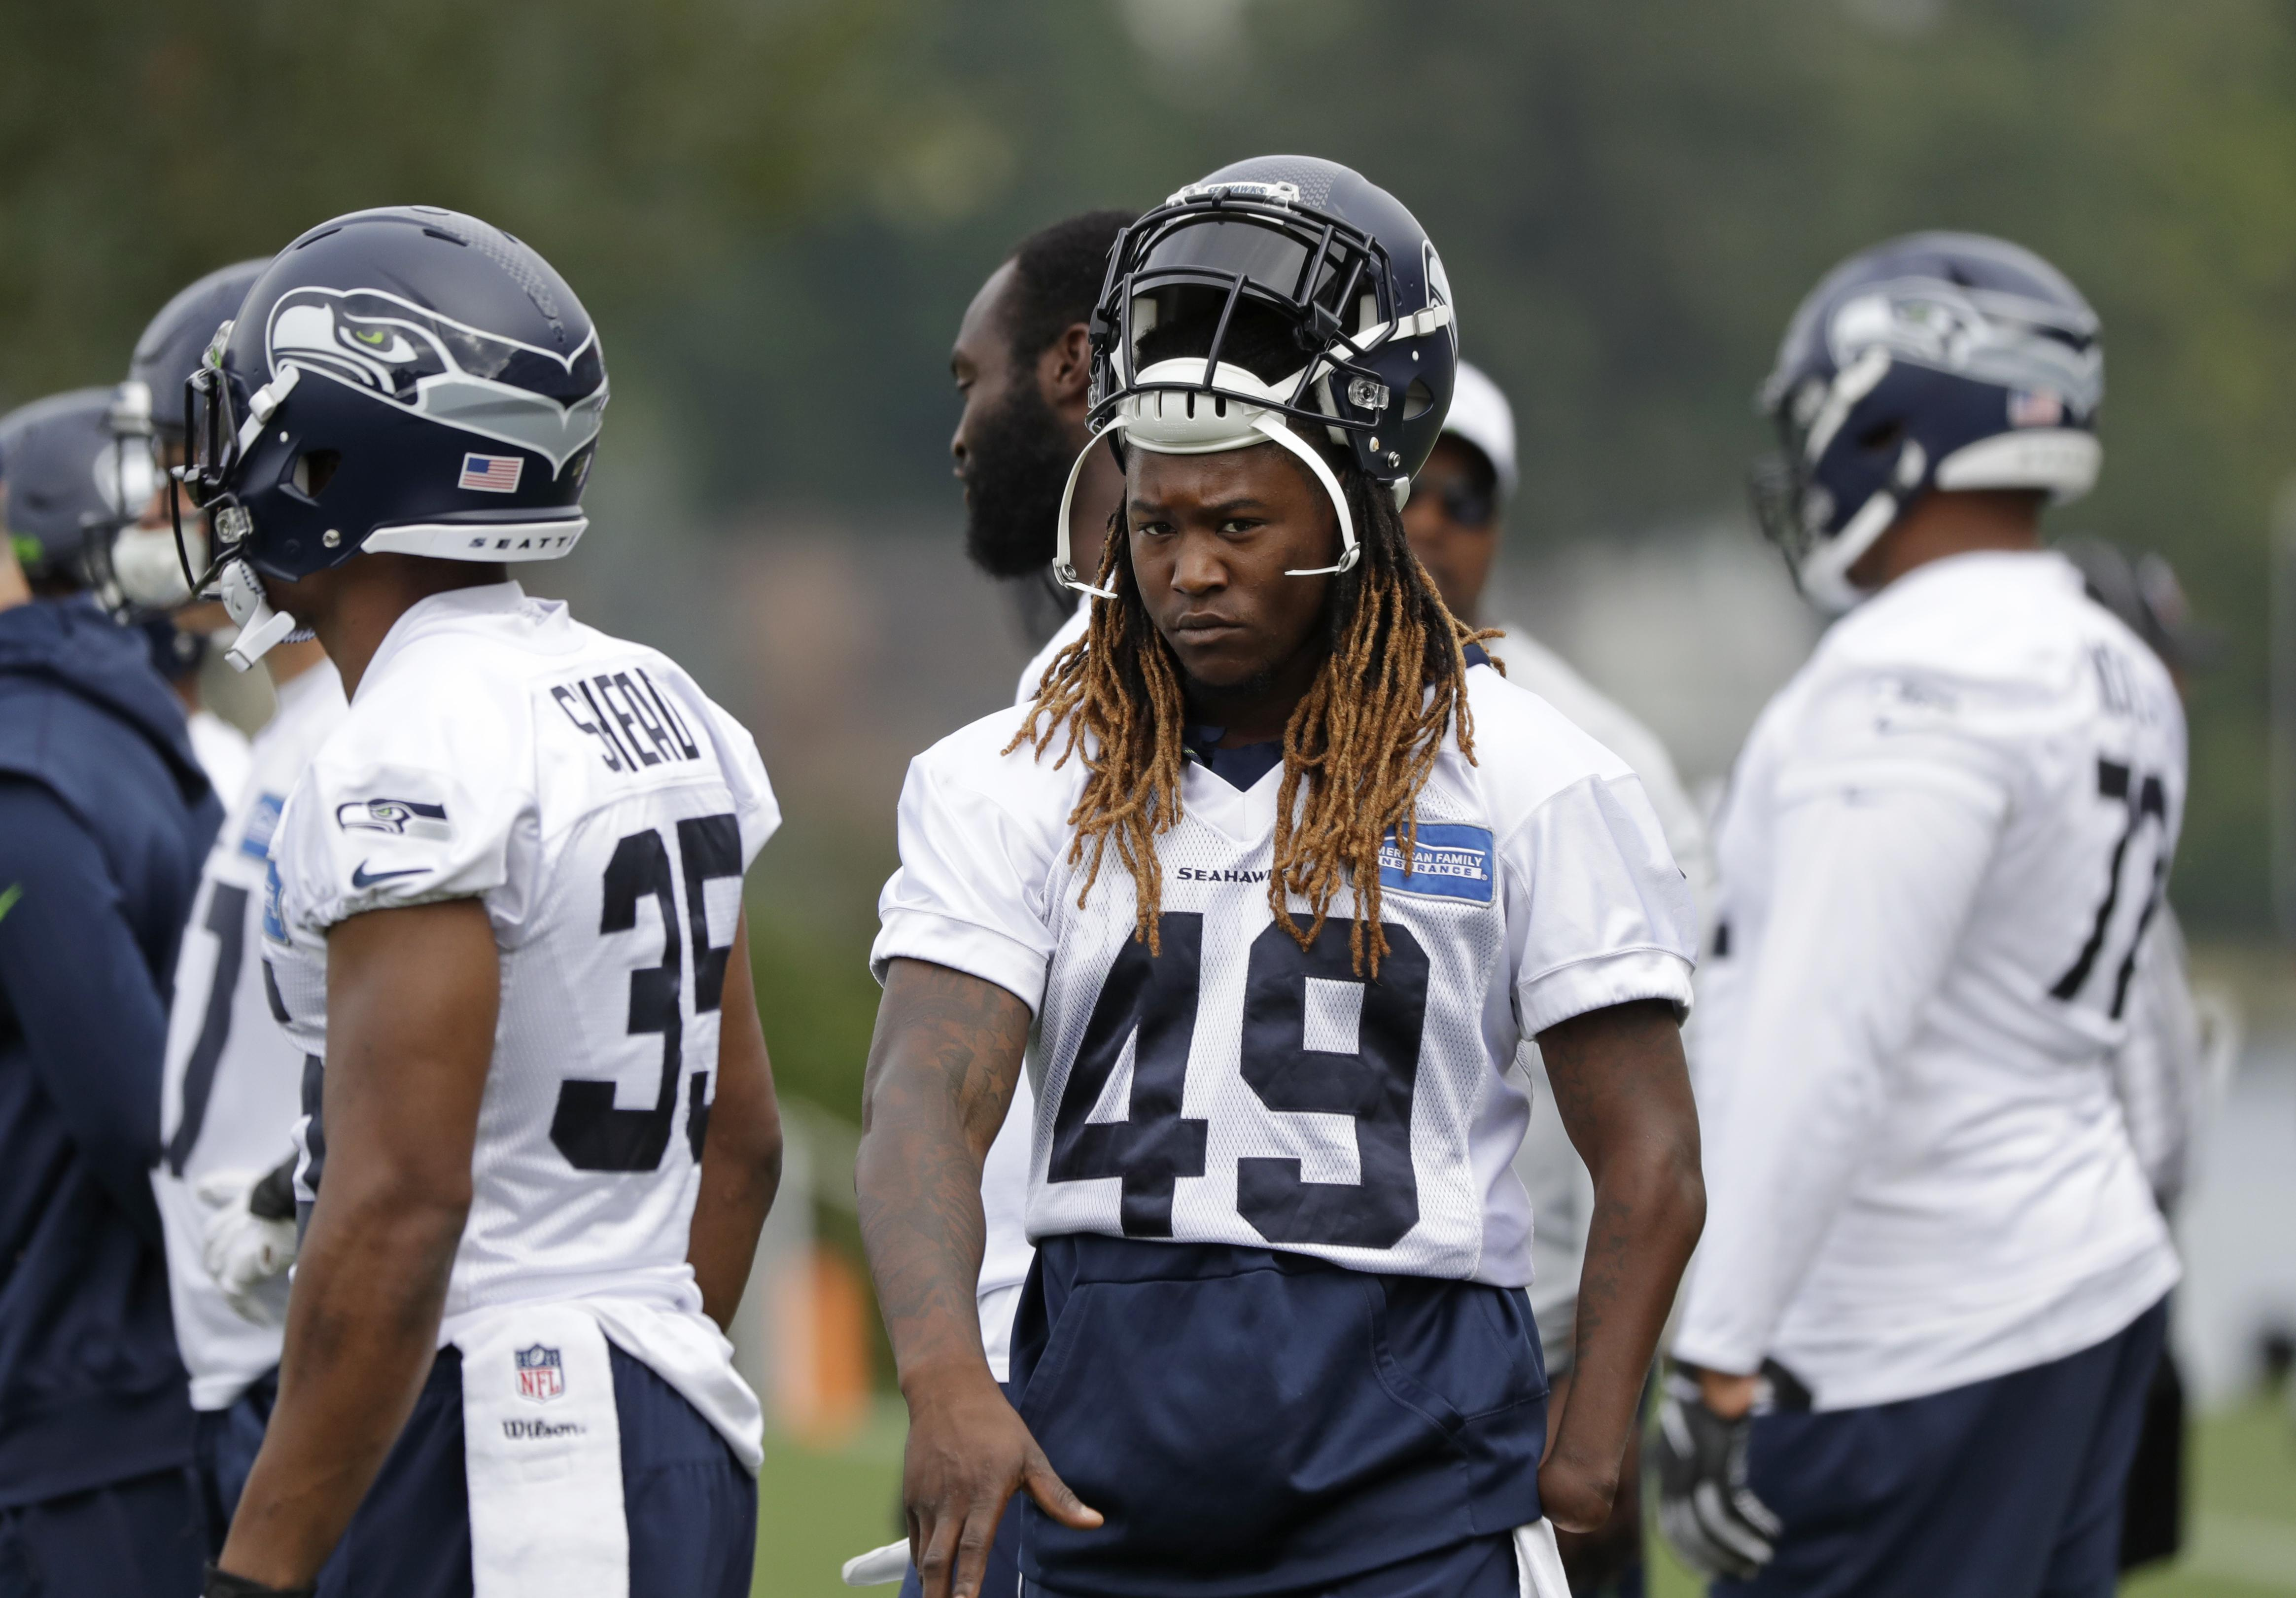 super popular c3b7e d4c0f Larry Stone: Shaquem Griffin, an inspirational NFL story ...